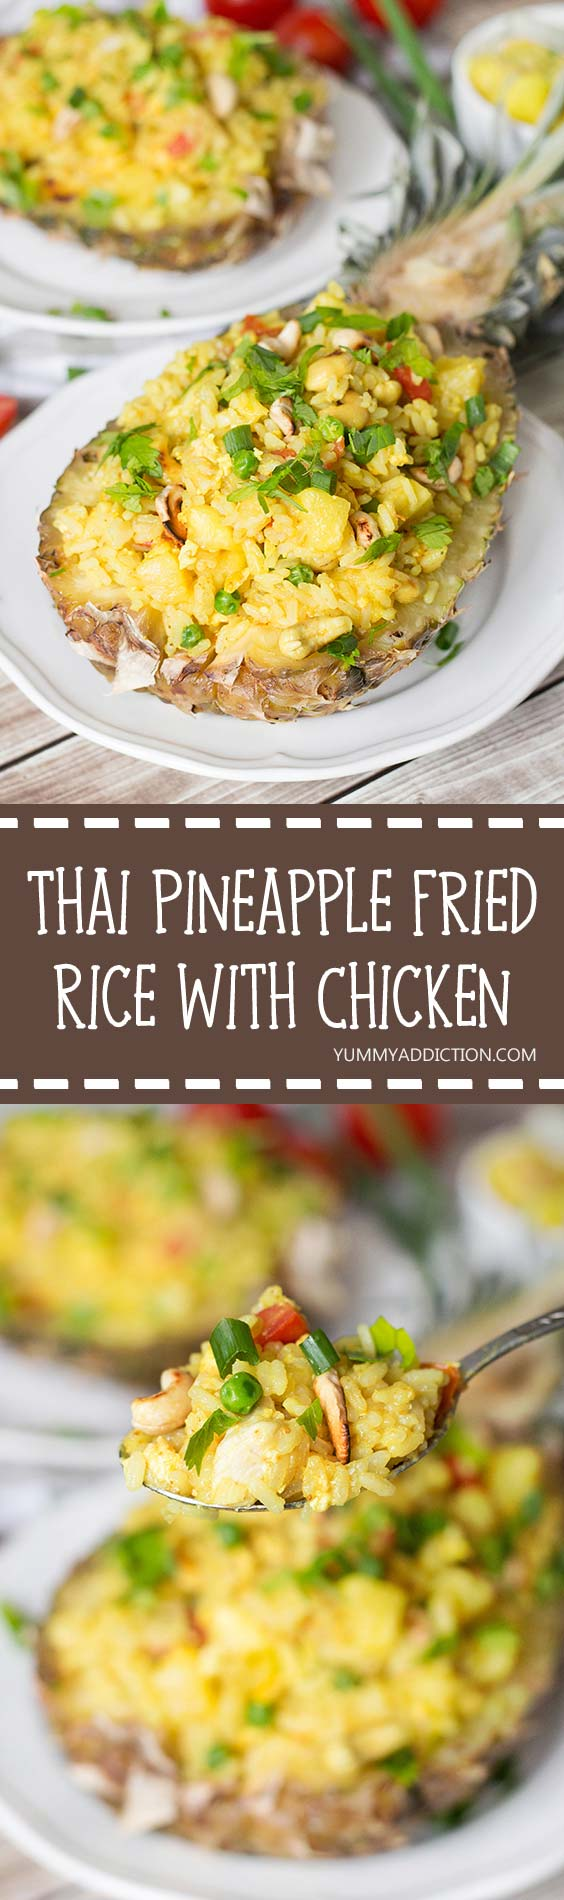 This Thai Pineapple Fried Rice with chicken makes a perfect weeknight dinner. It's delicious and healthy. Served in pineapple shells, it's also great for parties or other occasions! | yummyaddiction.com